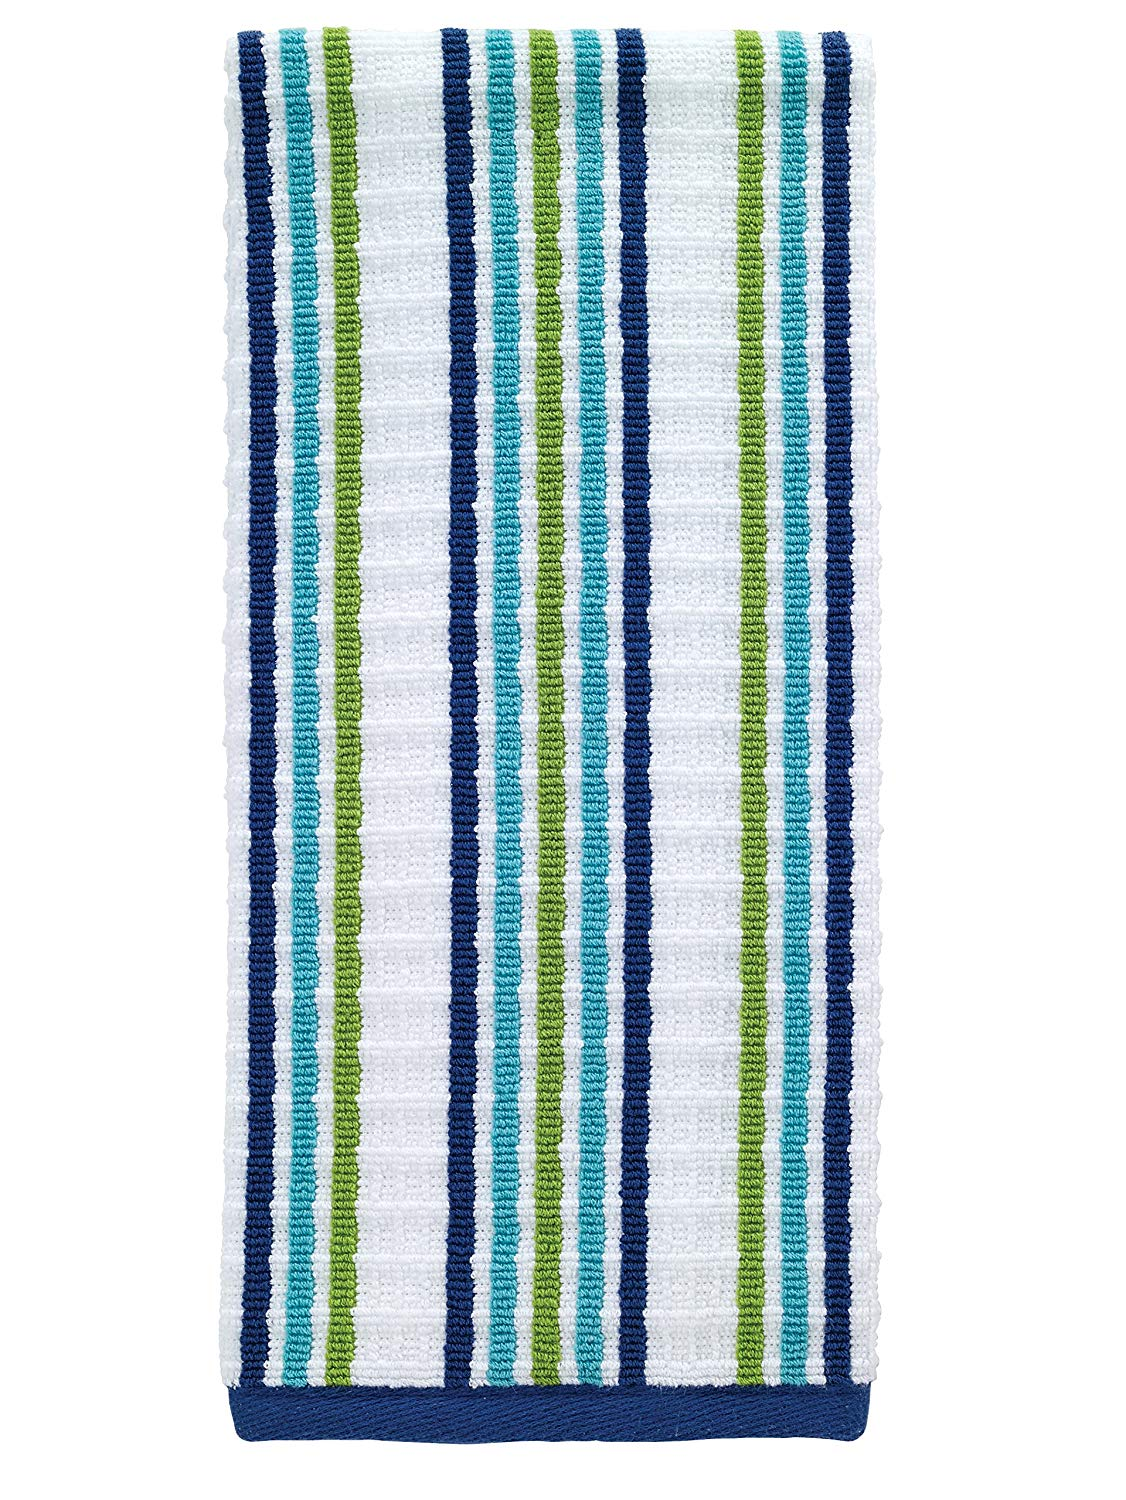 "T-fal Textiles Striped Waffle 100% Terry Cotton, Highly Absorbent, Anti-Microbial, Oversized Kitchen Towel, 16"" x 28"", Cool"